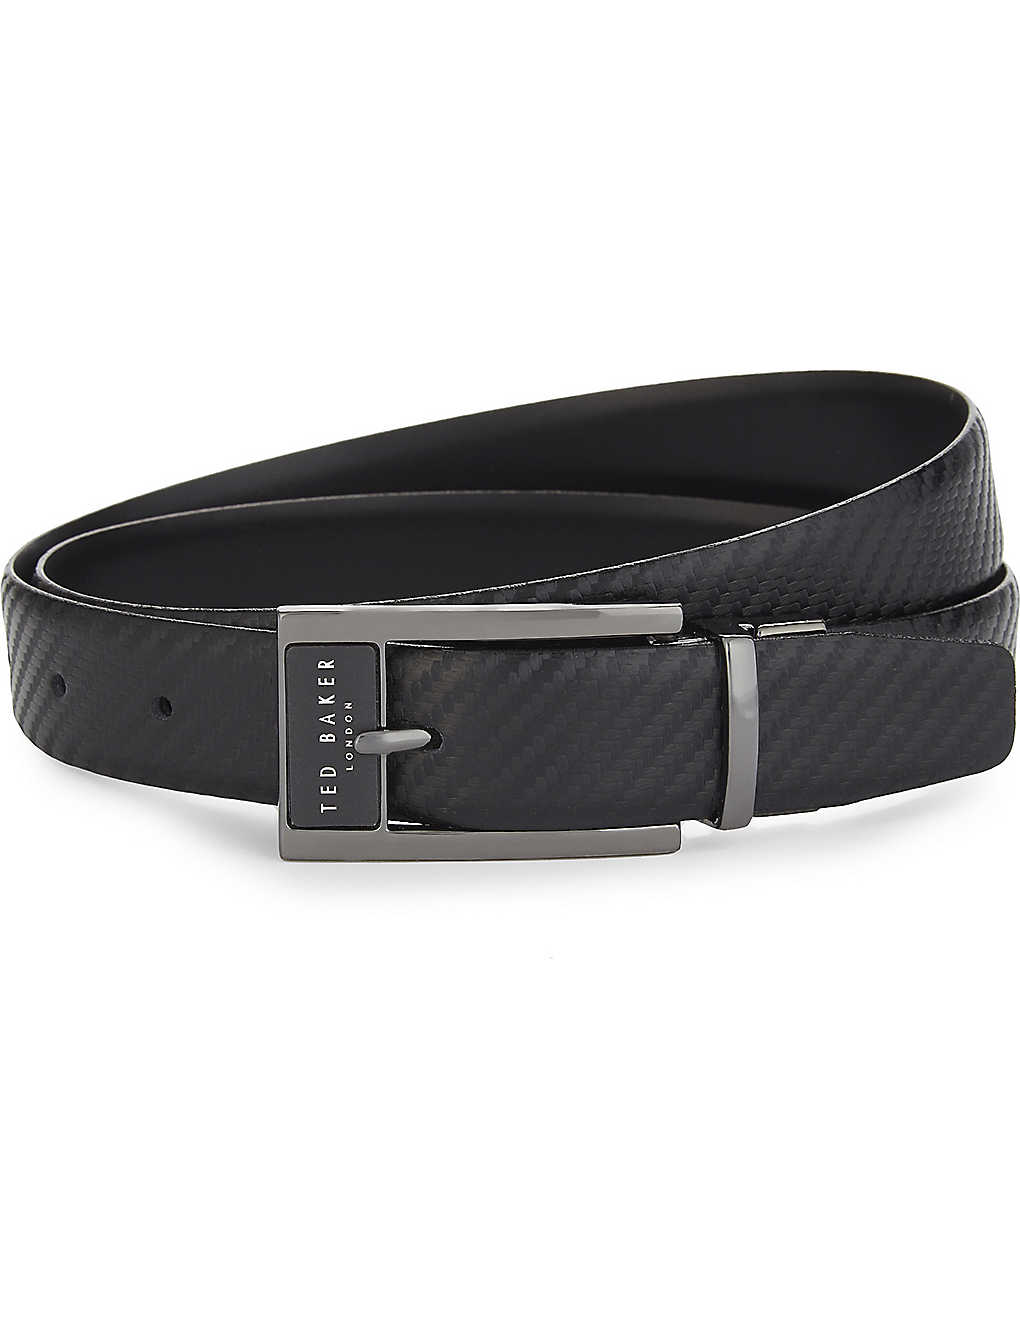 9a74ca29058d7 TED BAKER - Hibisis reversible leather belt